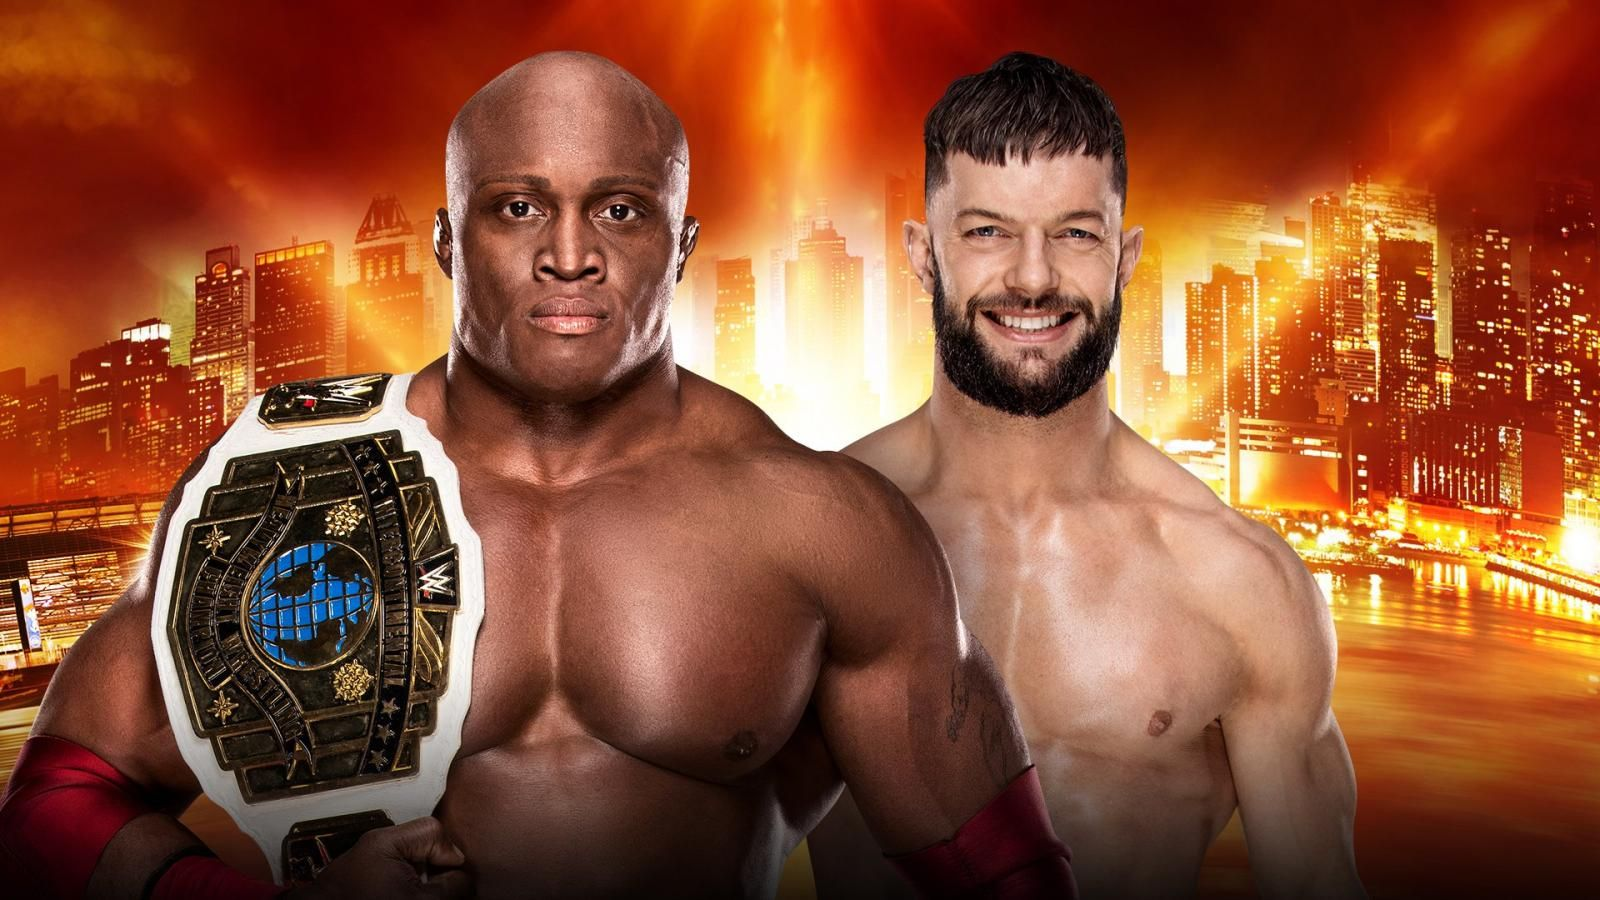 Bobby Lashley (c) vs Finn Bálor